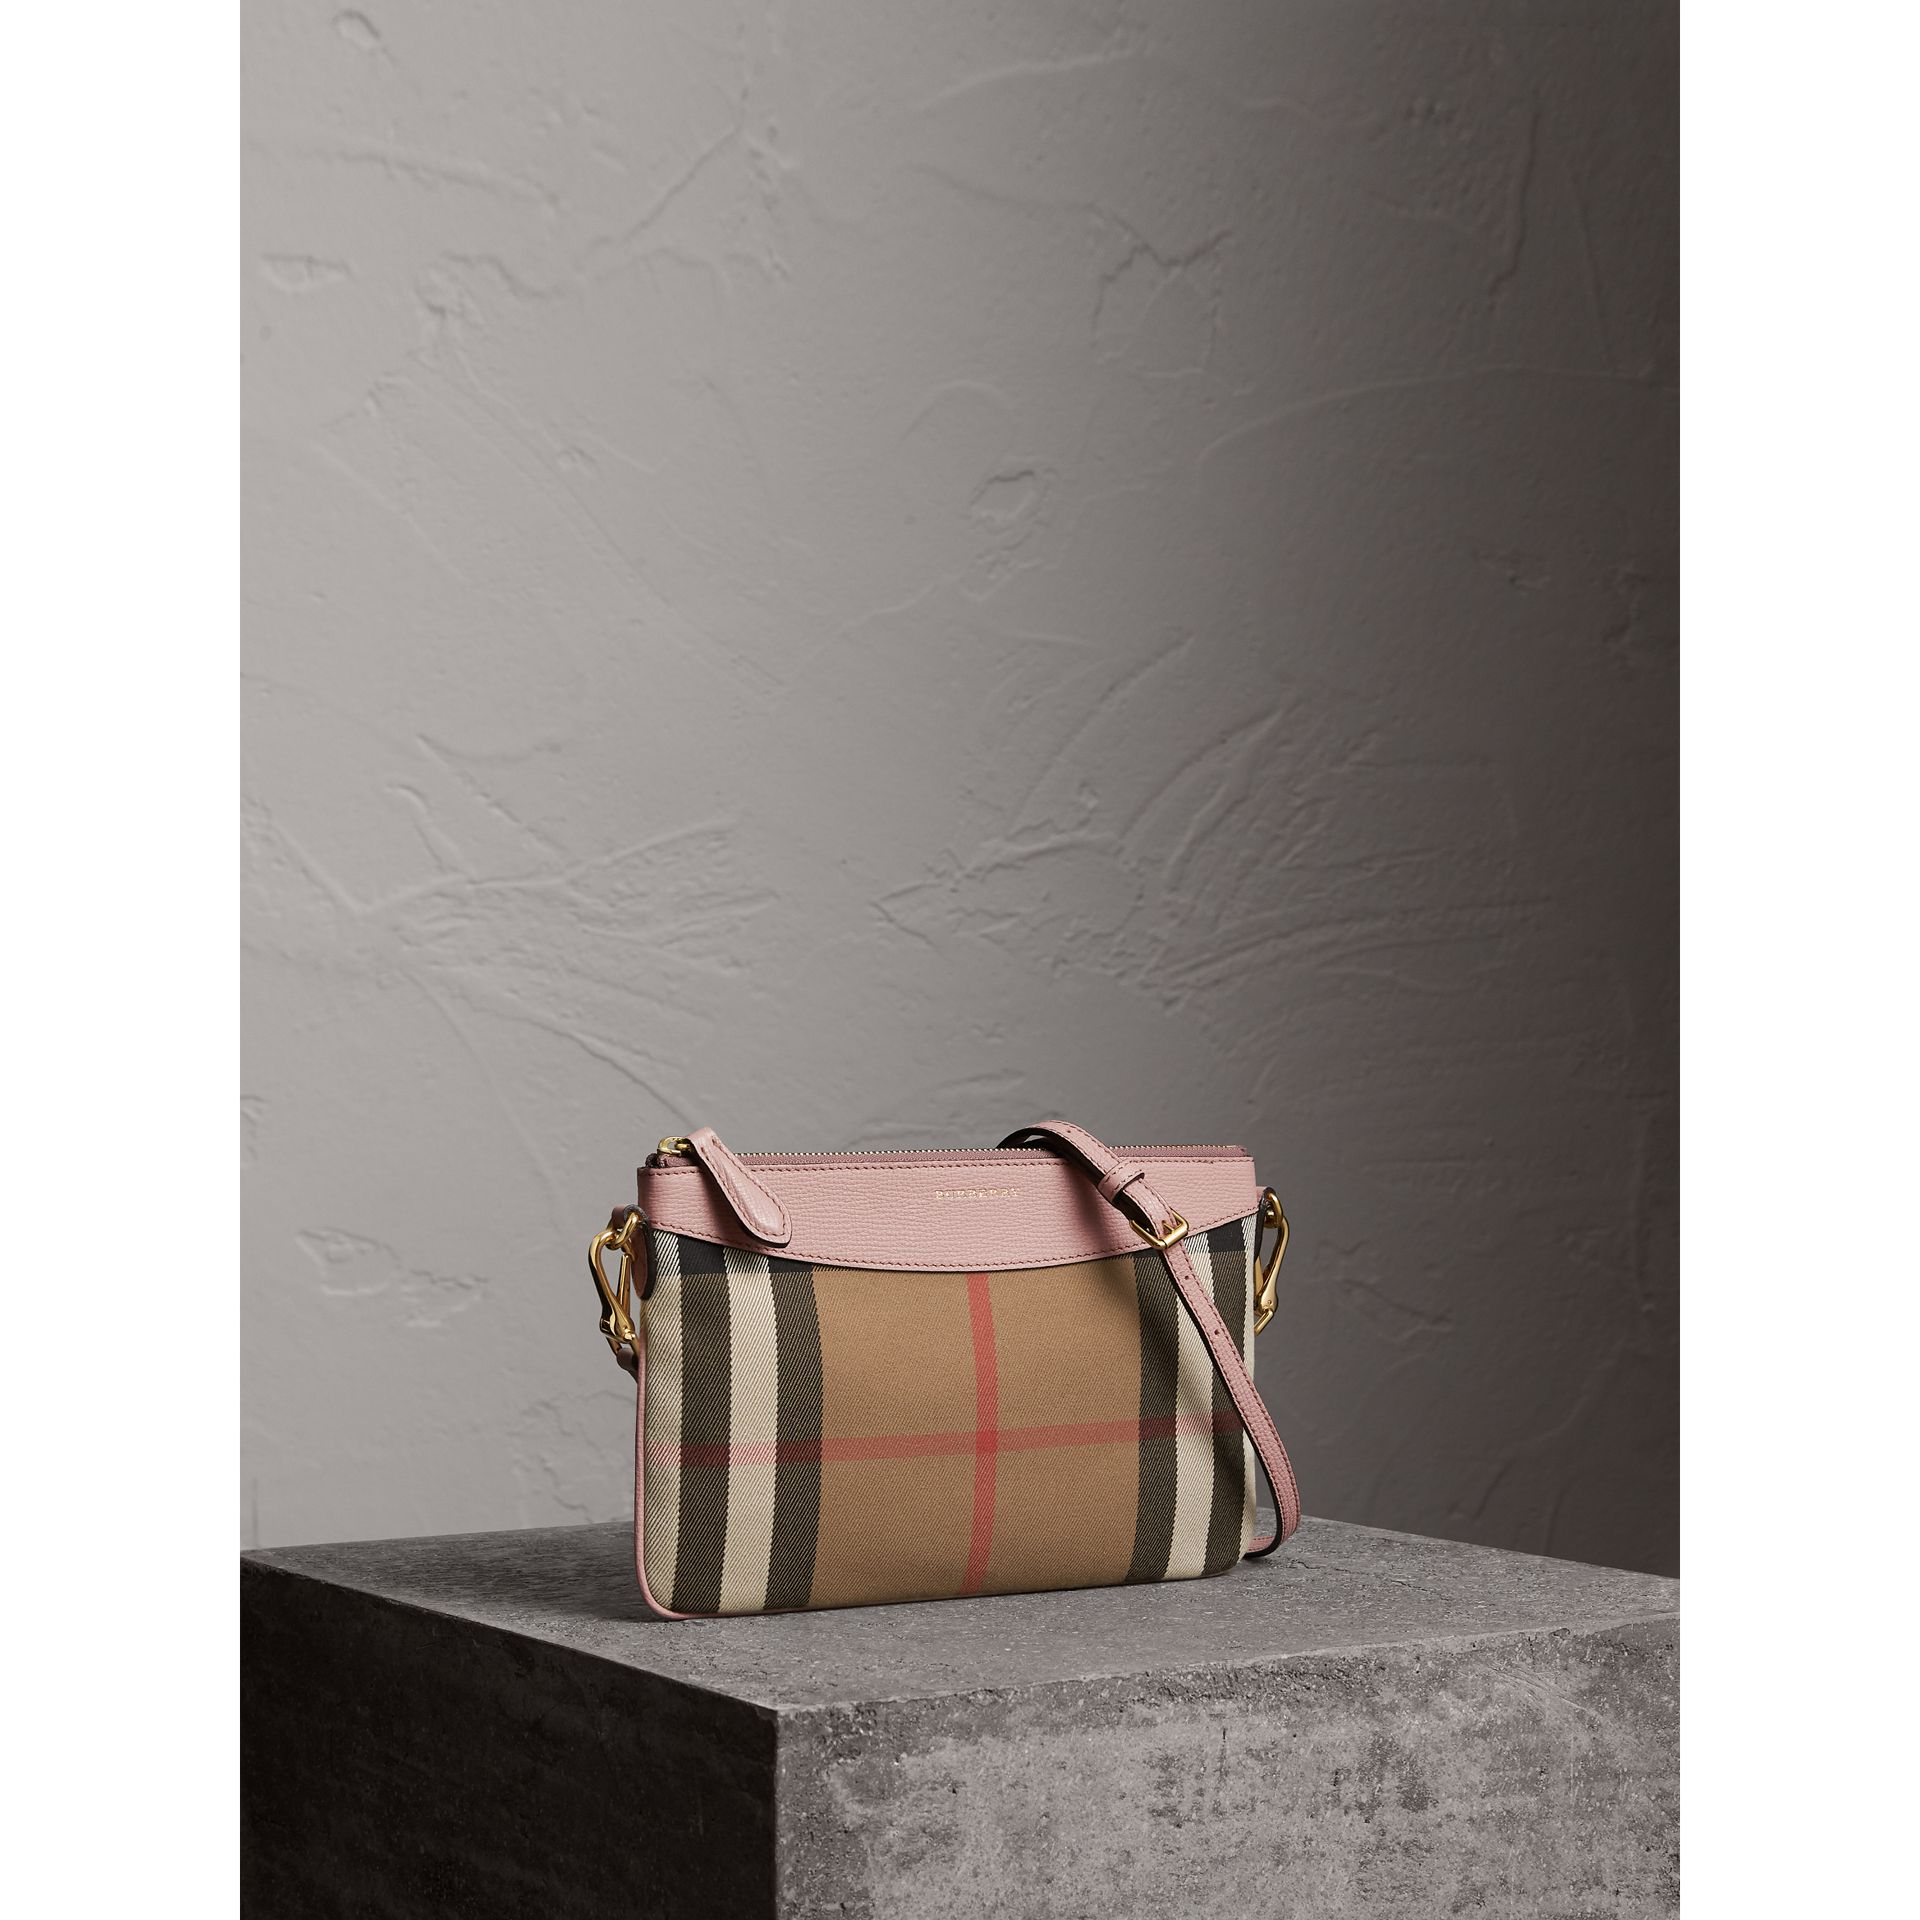 House Check and Leather Clutch Bag in Pale Orchid - Women | Burberry - gallery image 5